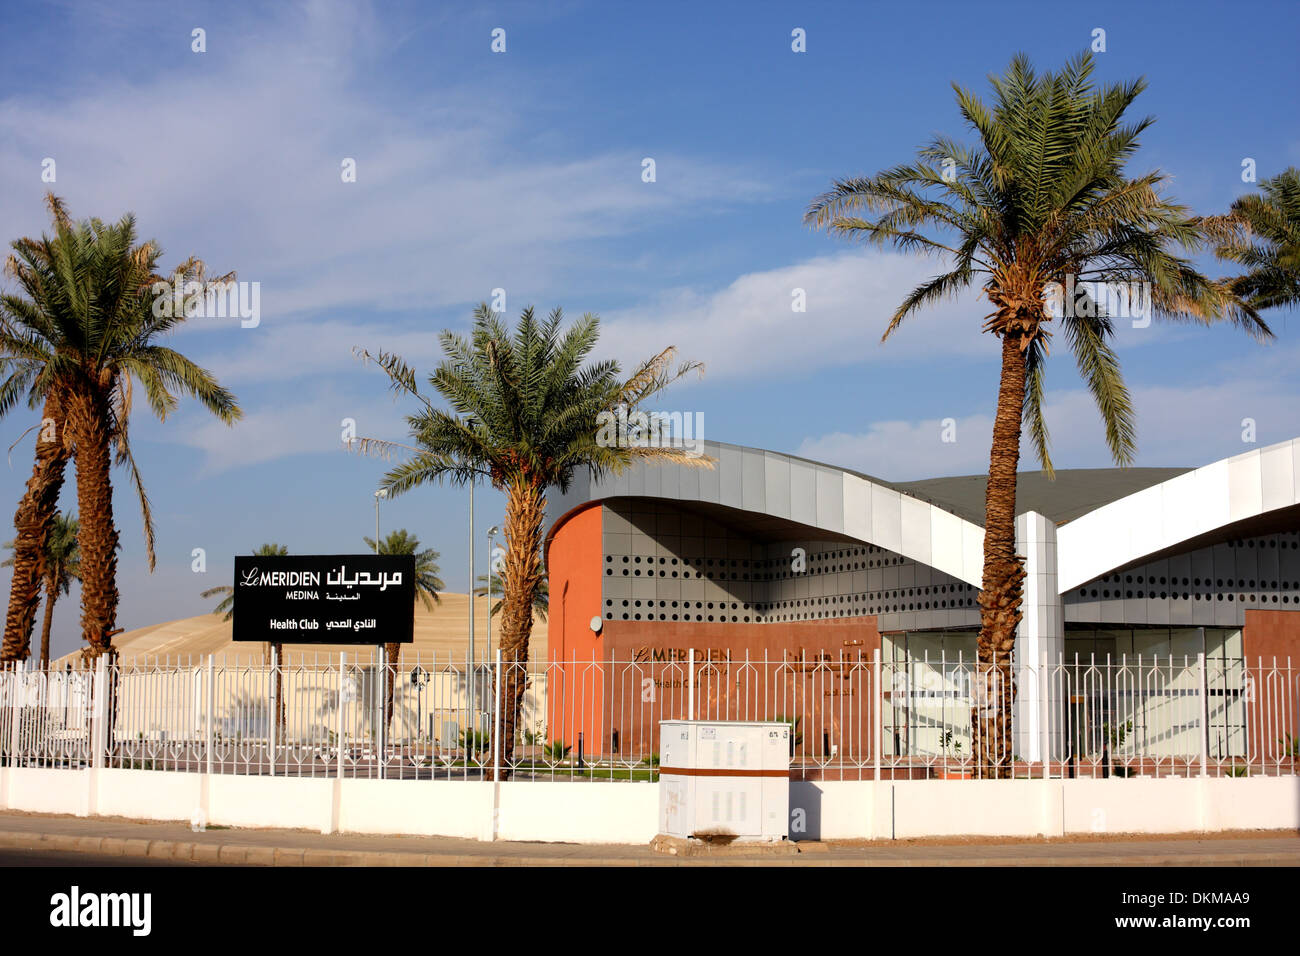 Health Club of Le Meridien Hotel, Medina, Kingdom of Saudi Arabia - Stock Image